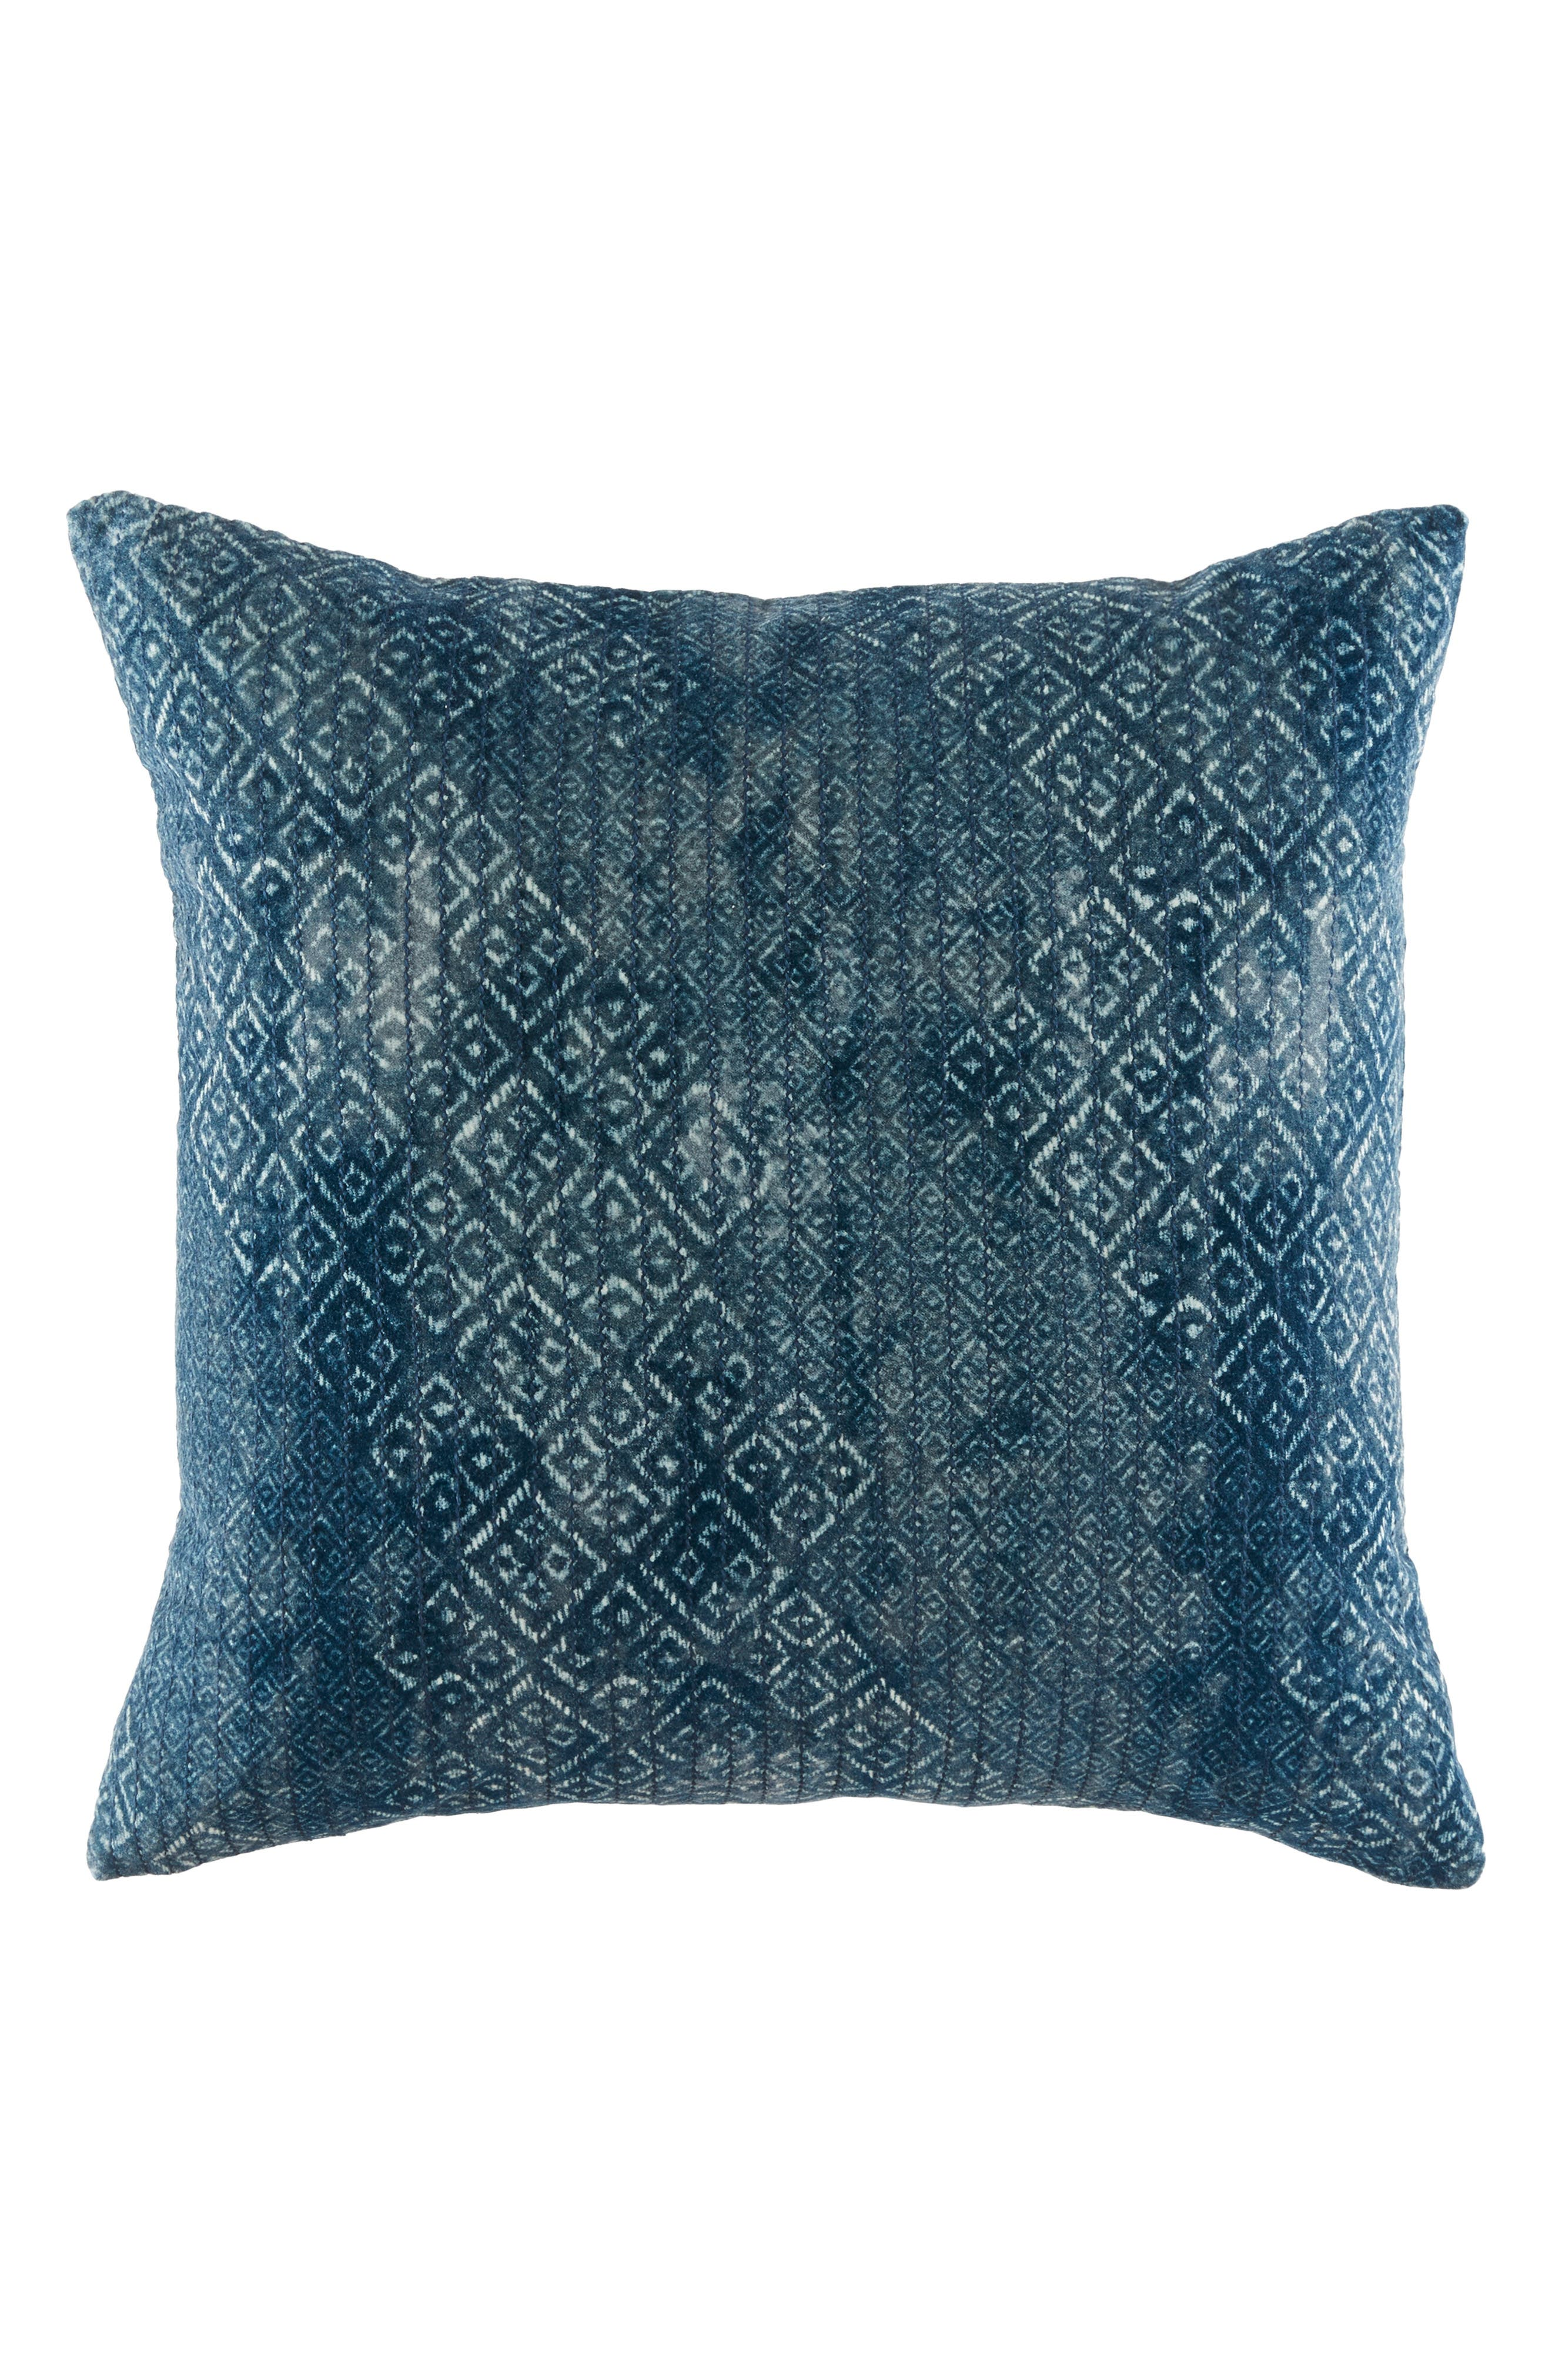 Pala Accent Pillow,                             Main thumbnail 1, color,                             400